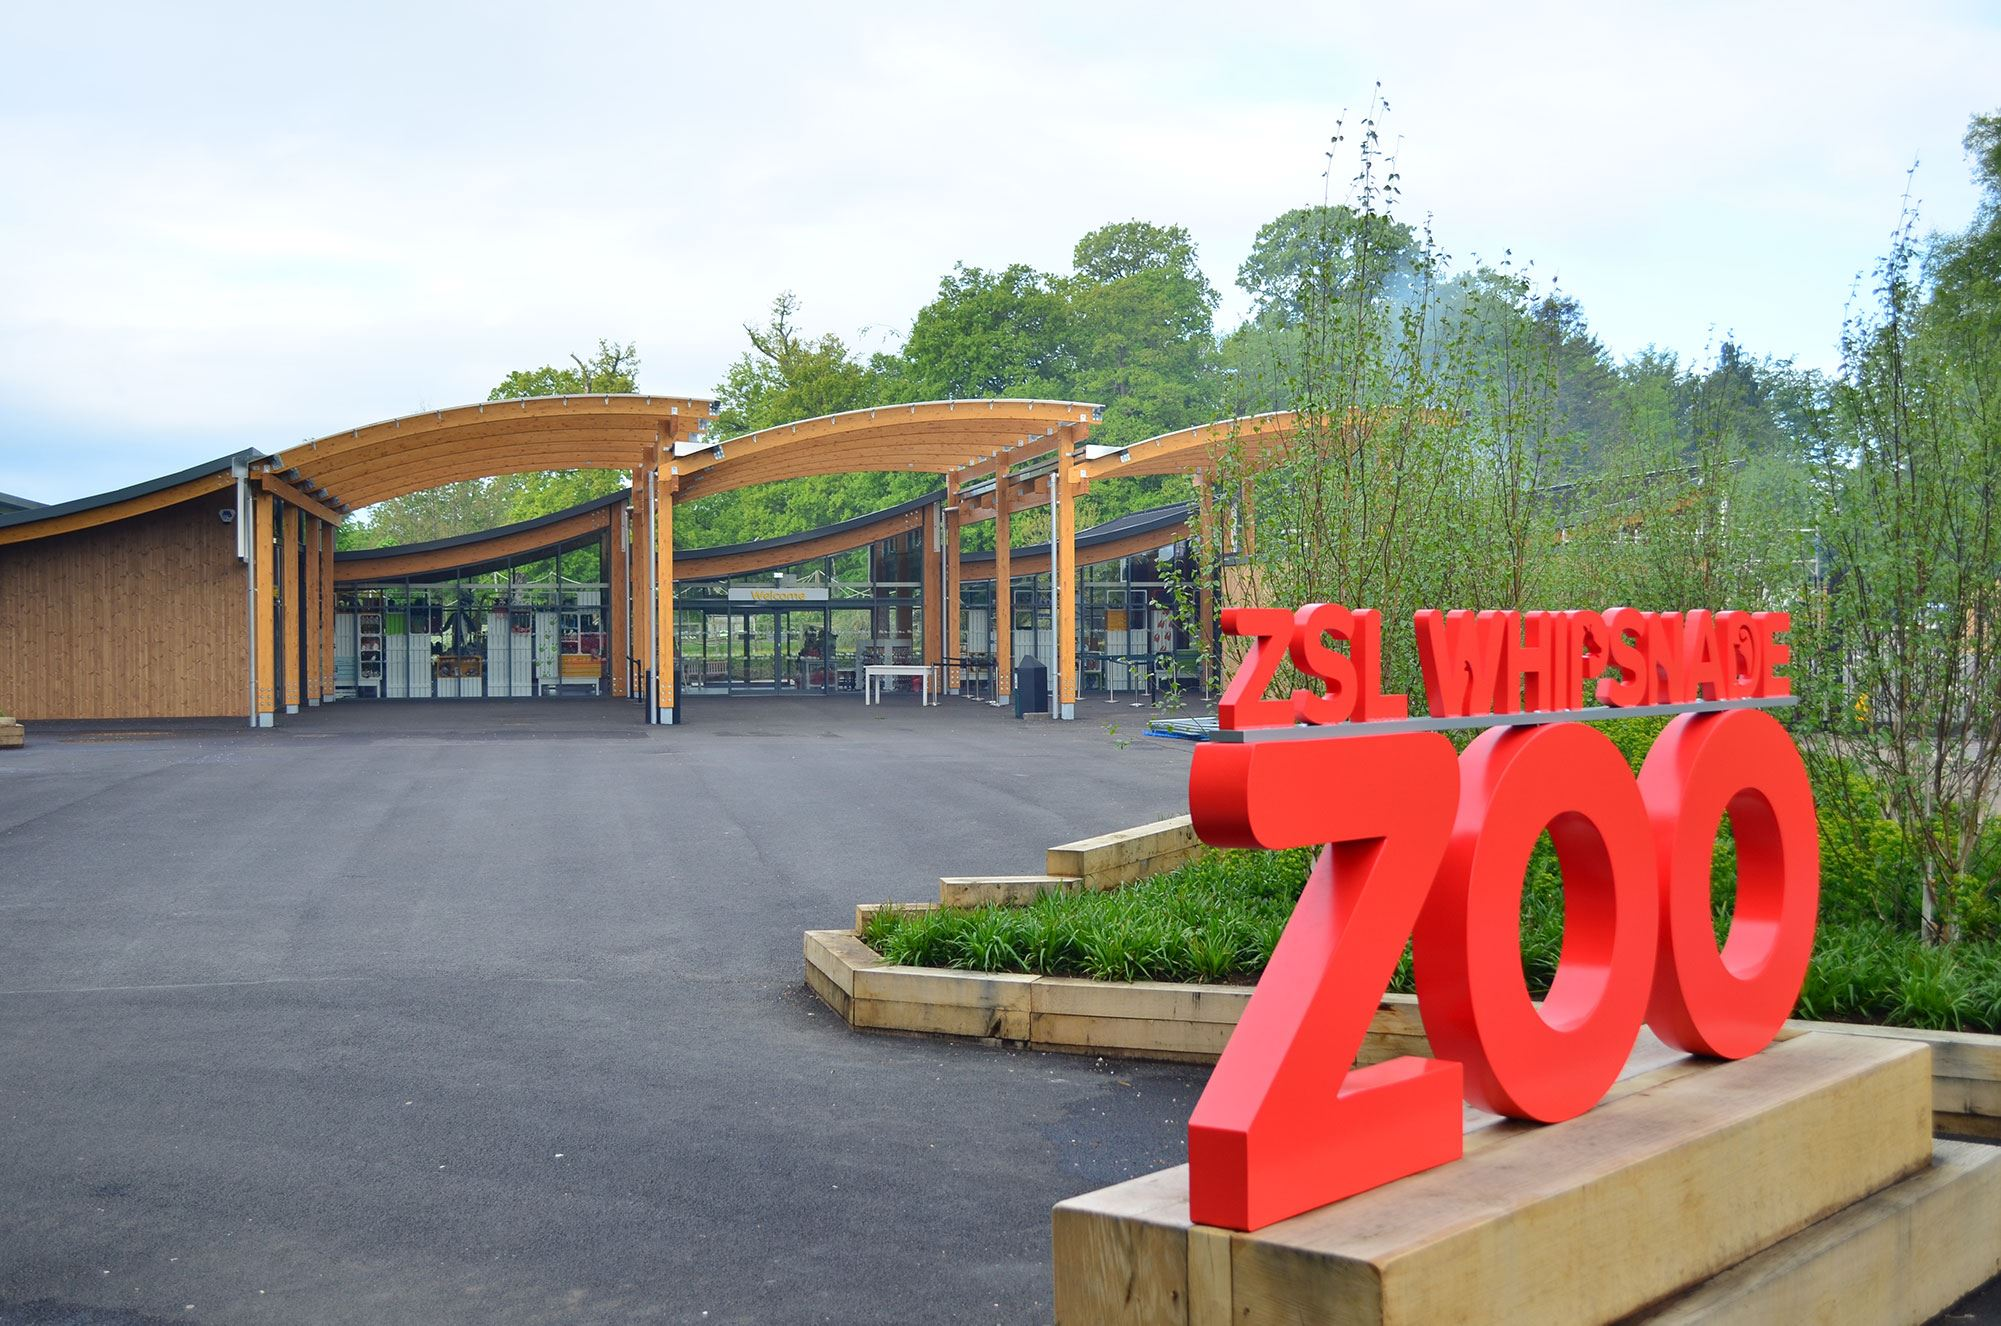 Butterfly and Crocodile Enclosure and Zoo Entrance, Dunstable